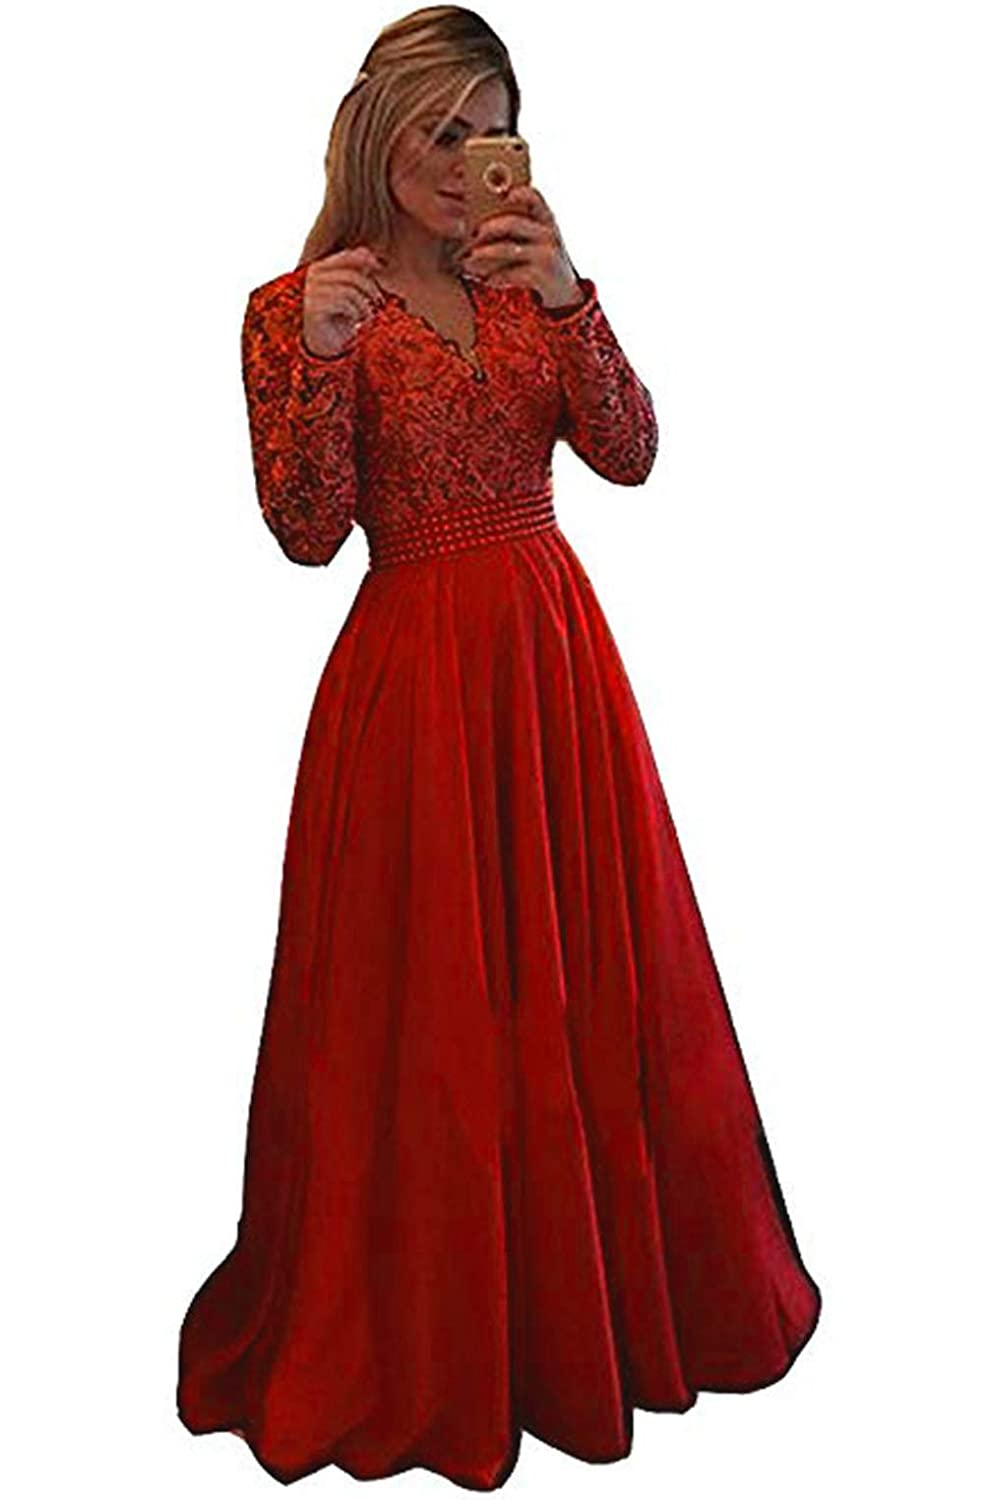 Bred Ri Yun Womens Prom Dresses Long Sleeve Lace 2018 Illusions Back Pearl VNeck Formal Evening Ball Gowns